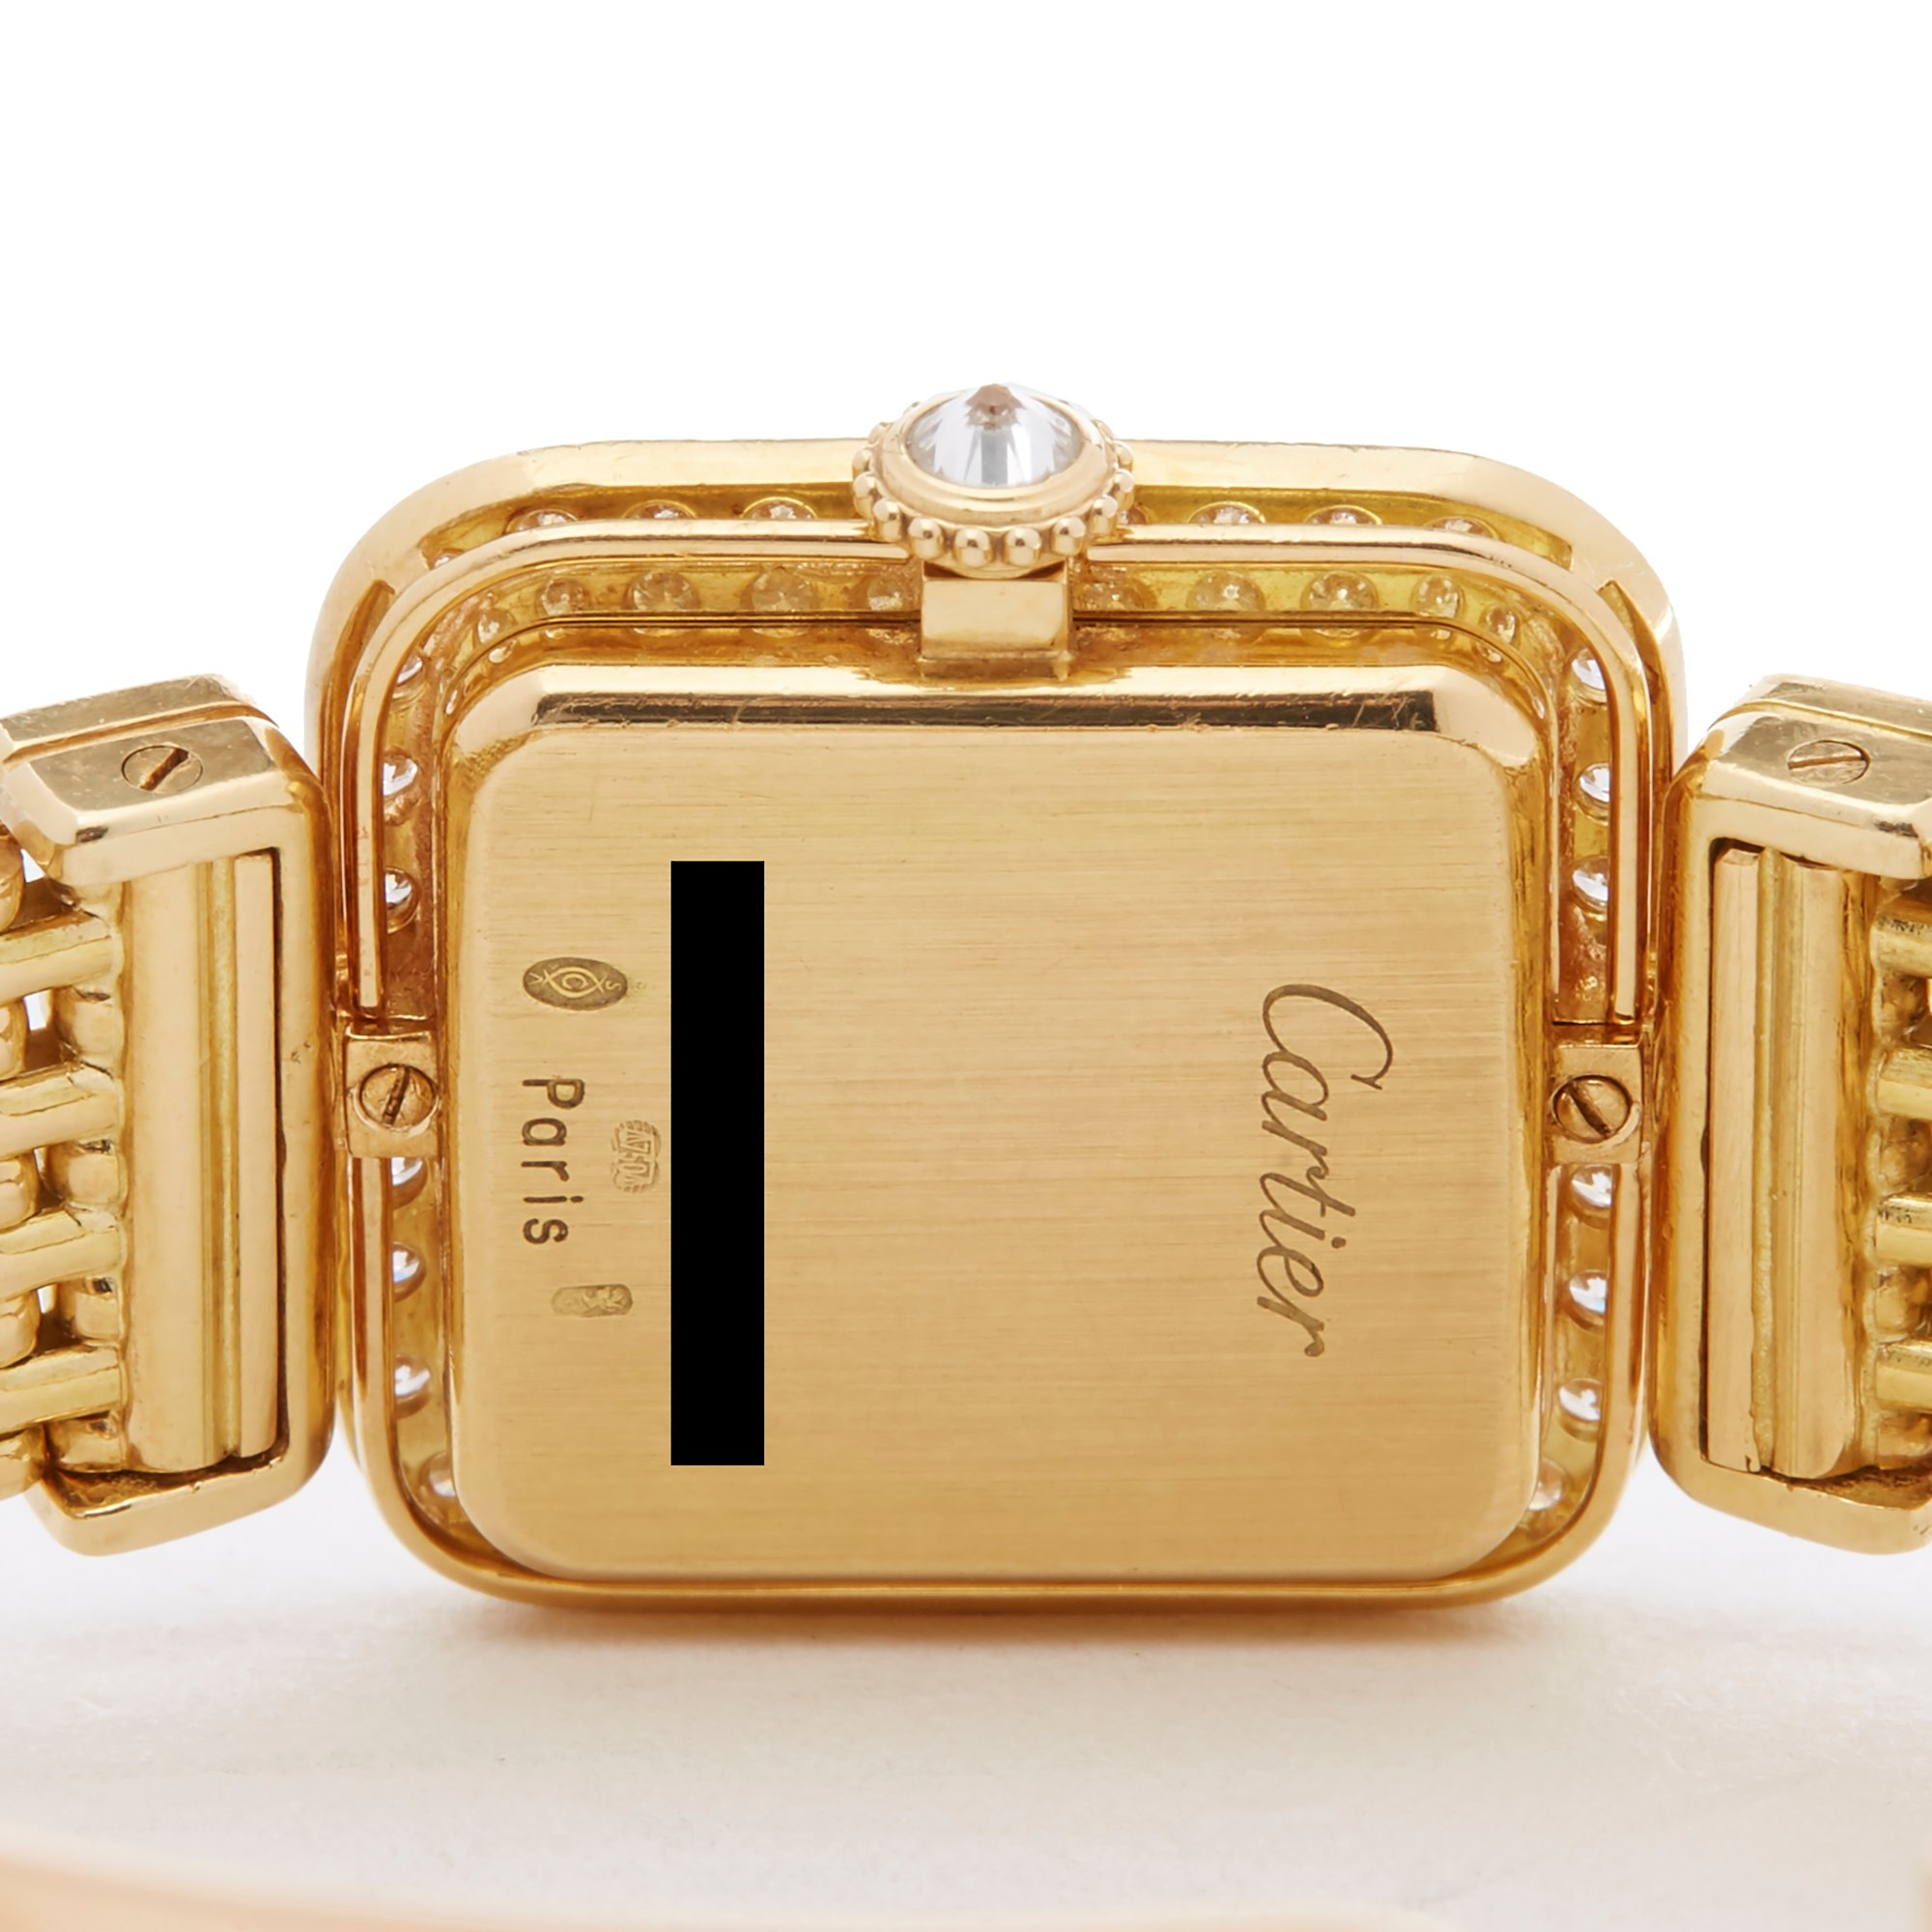 Cartier Sonate Paris Diamond Yellow Gold - 8914000 or 8035 Yellow Gold 8914000 or 8035